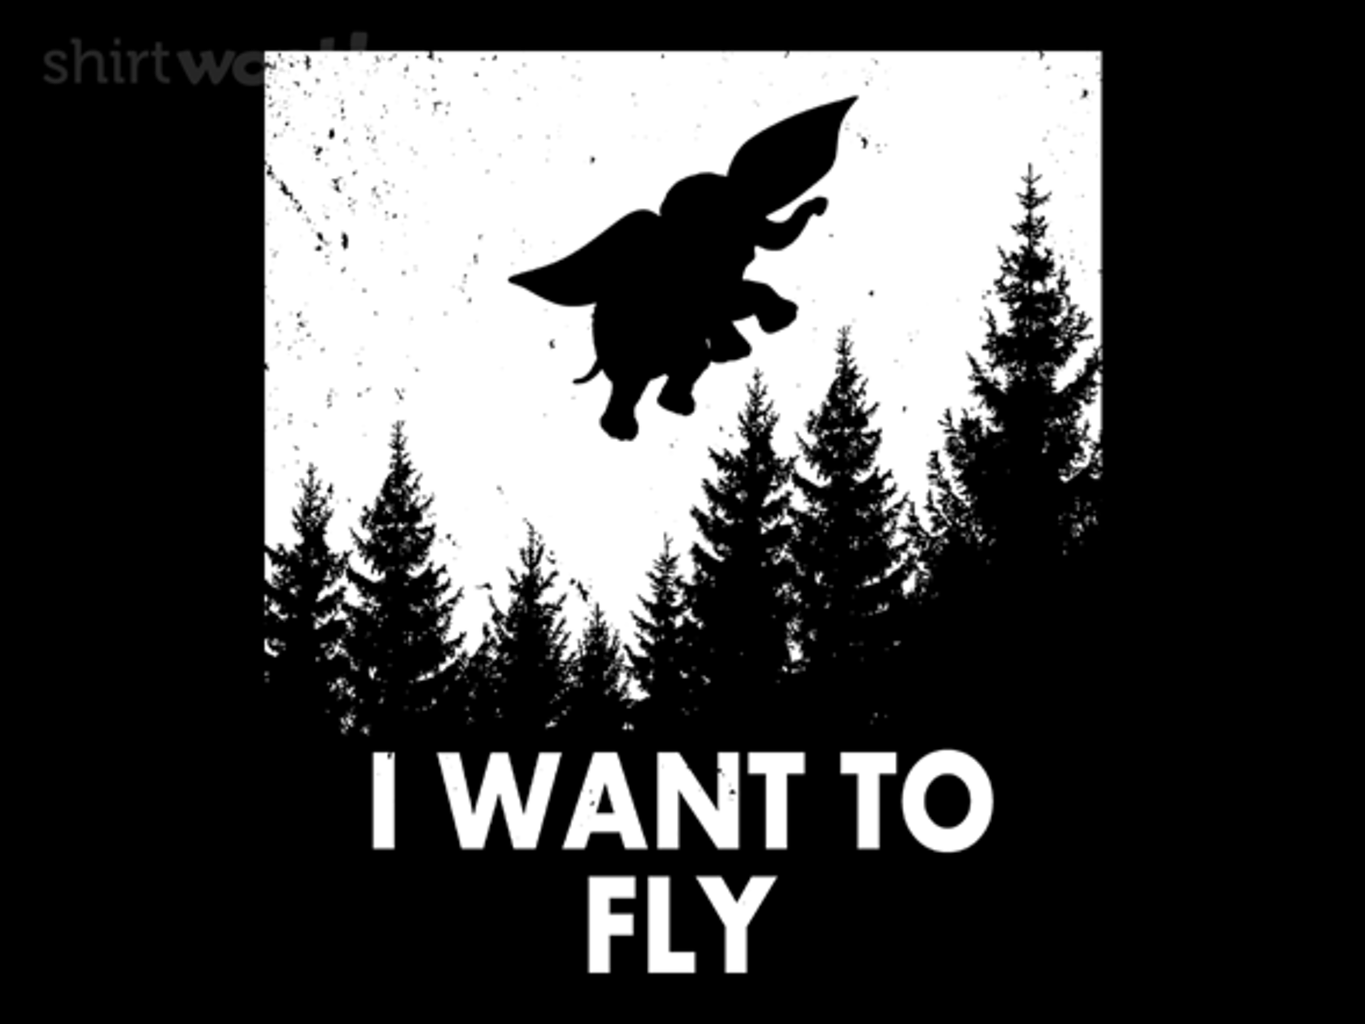 Woot!: I Want to Fly